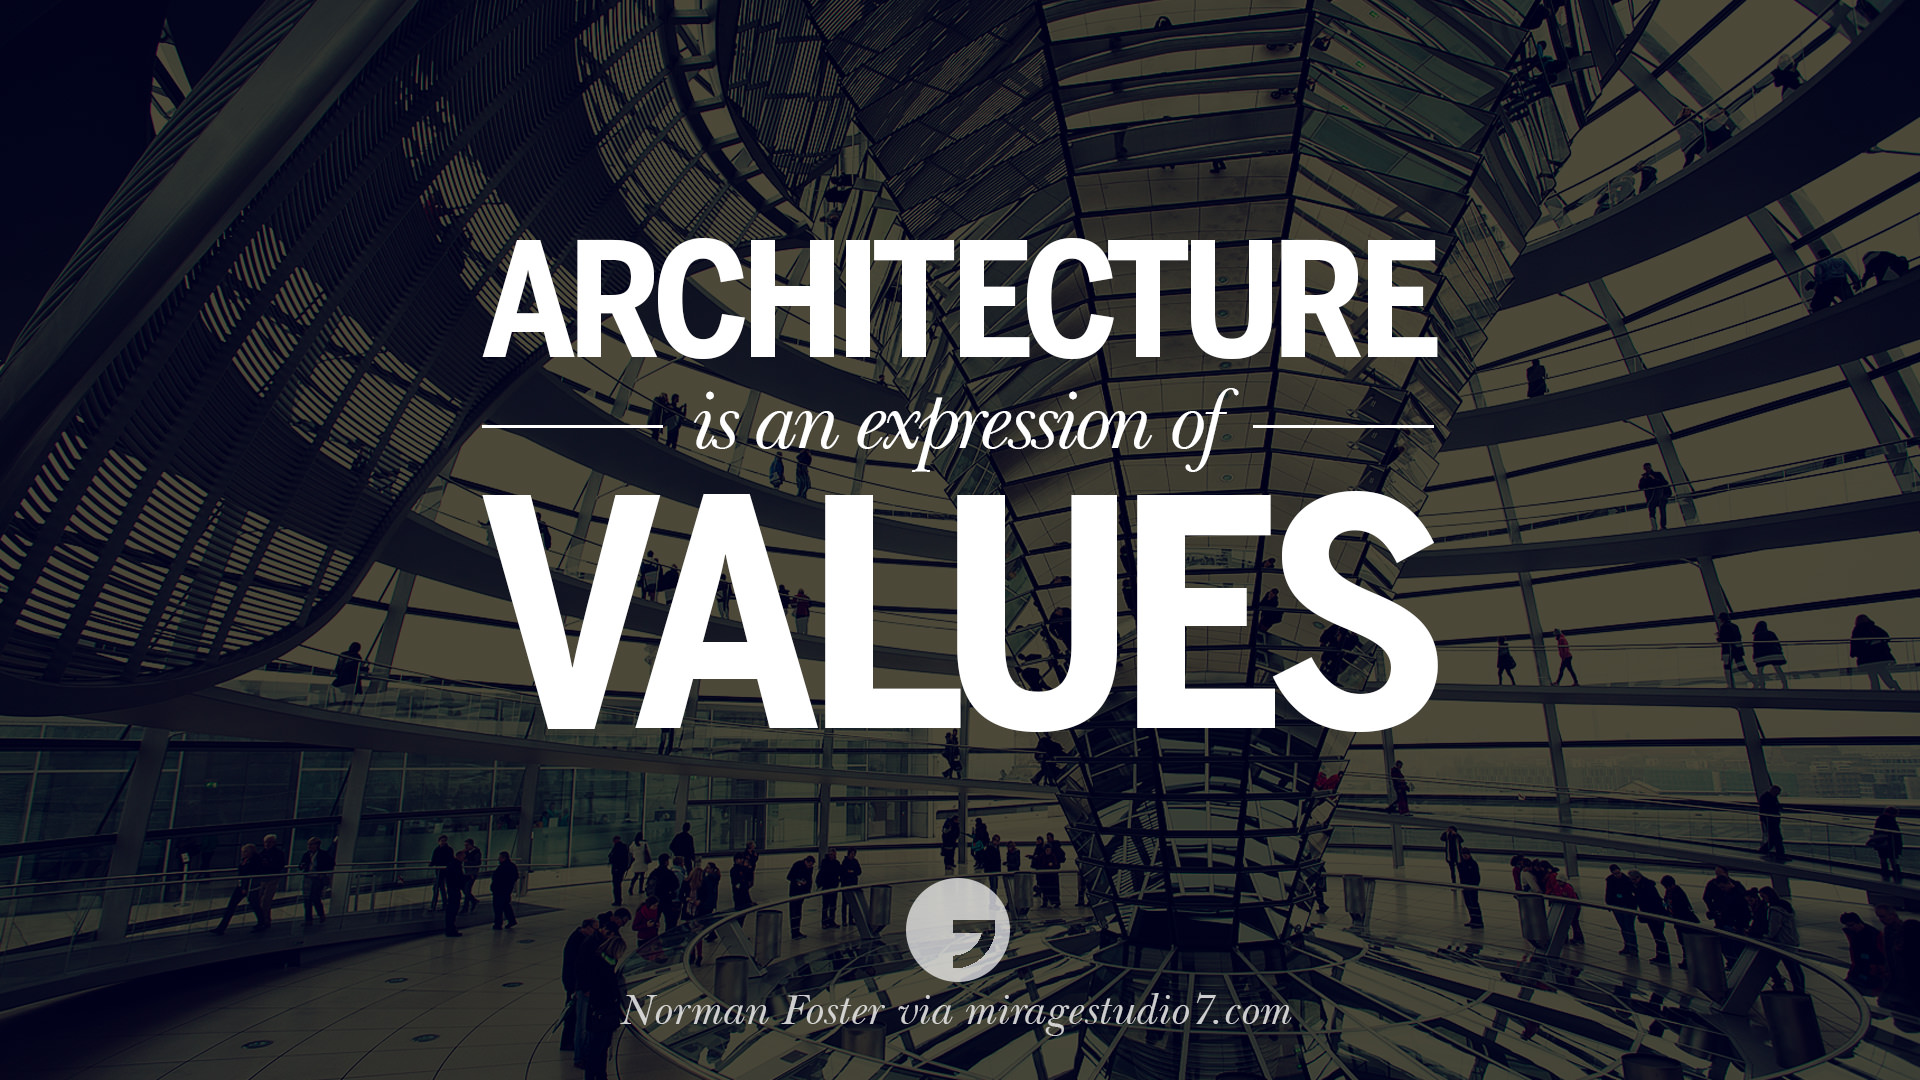 28 inspirational architecture quotes by famous architects for Find architecture